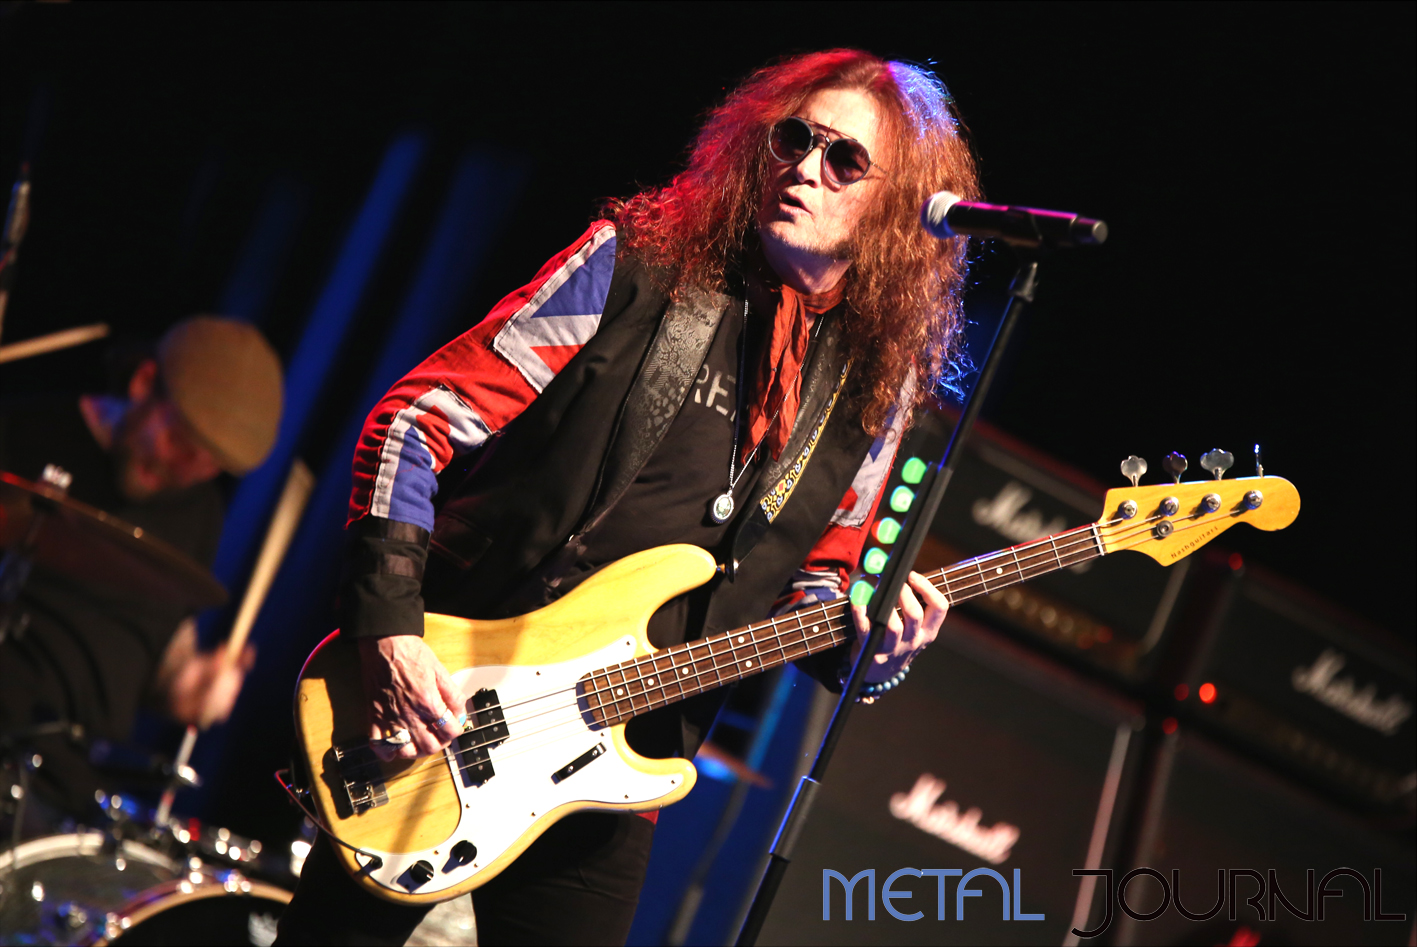 glenn hughes - metal journal pic 8